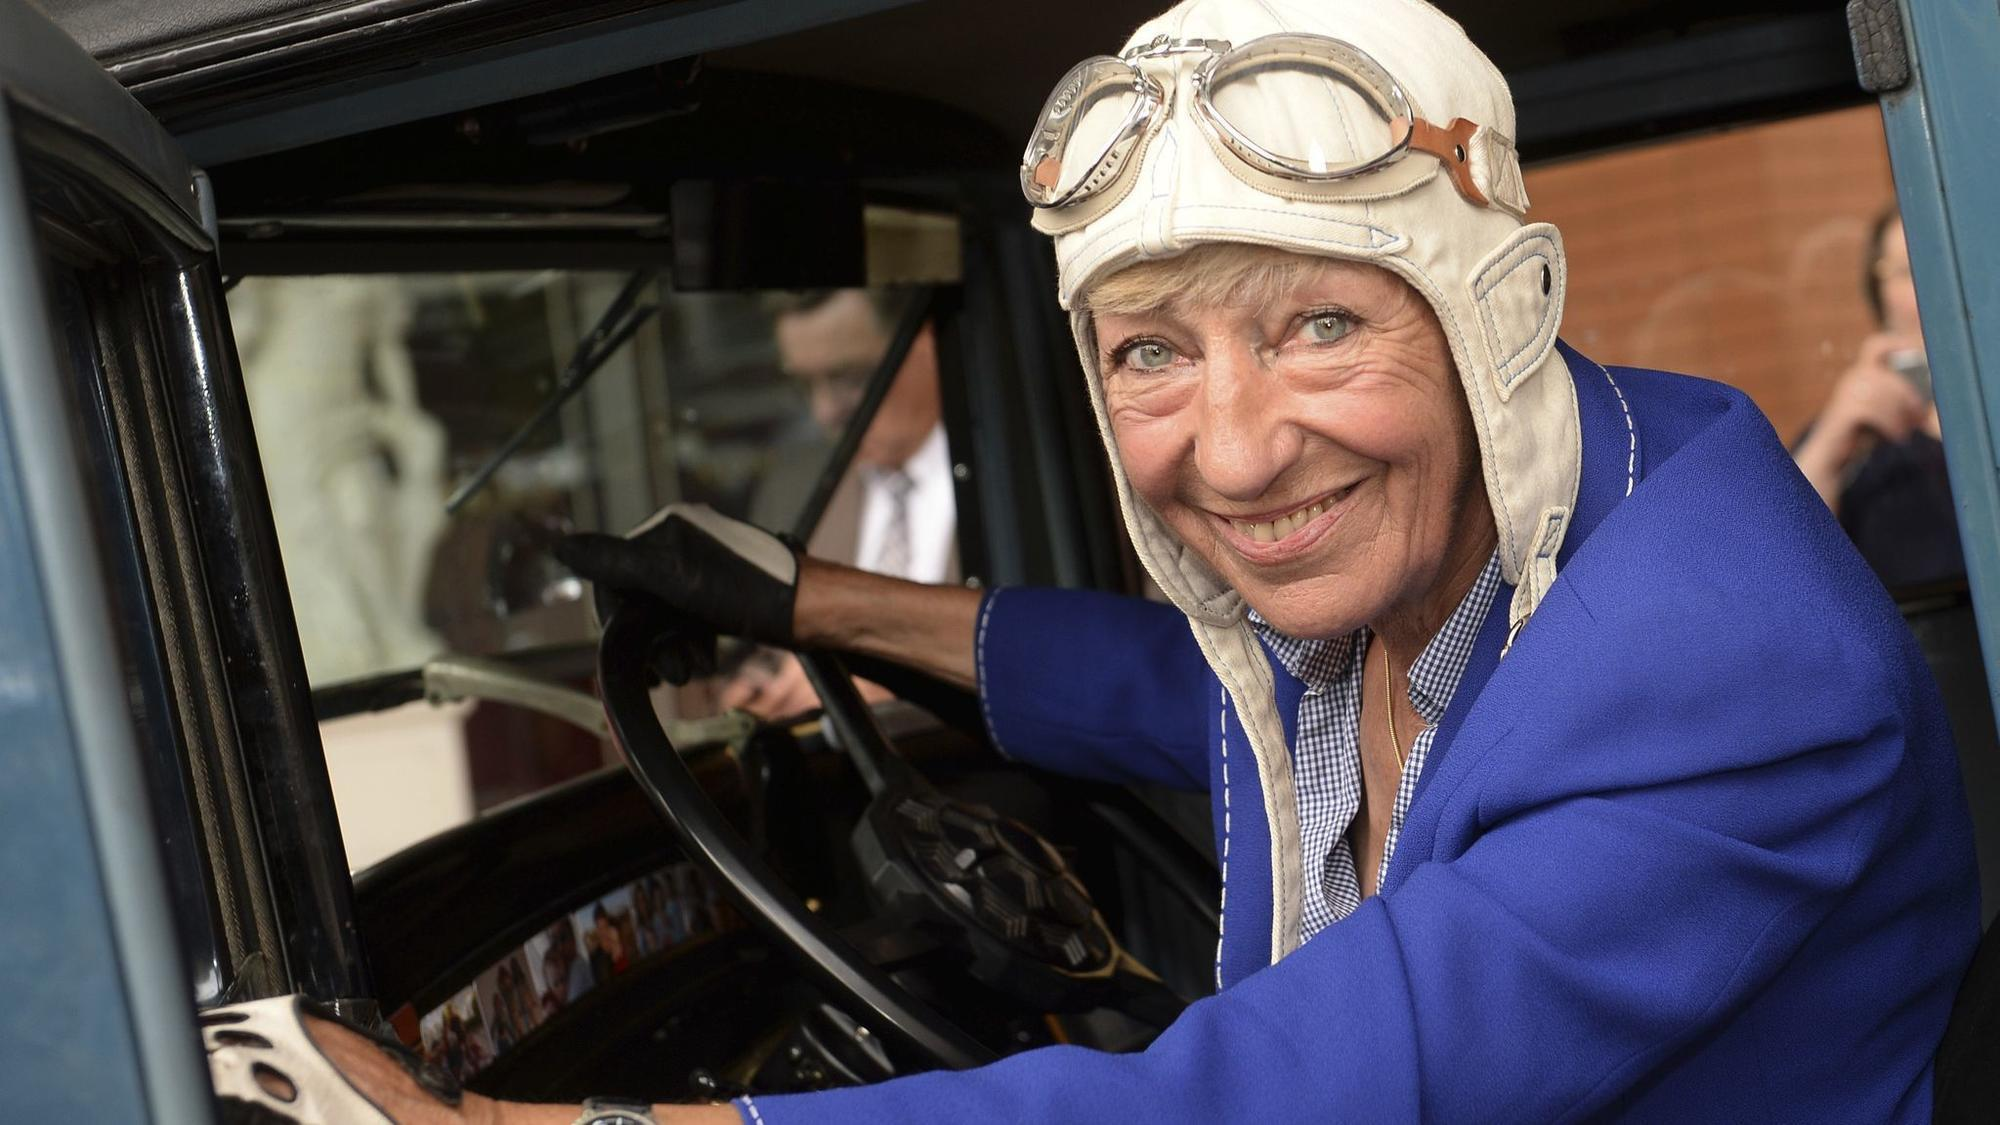 Heidi Hetzer, who decided one day to drive around the world, dies at 81